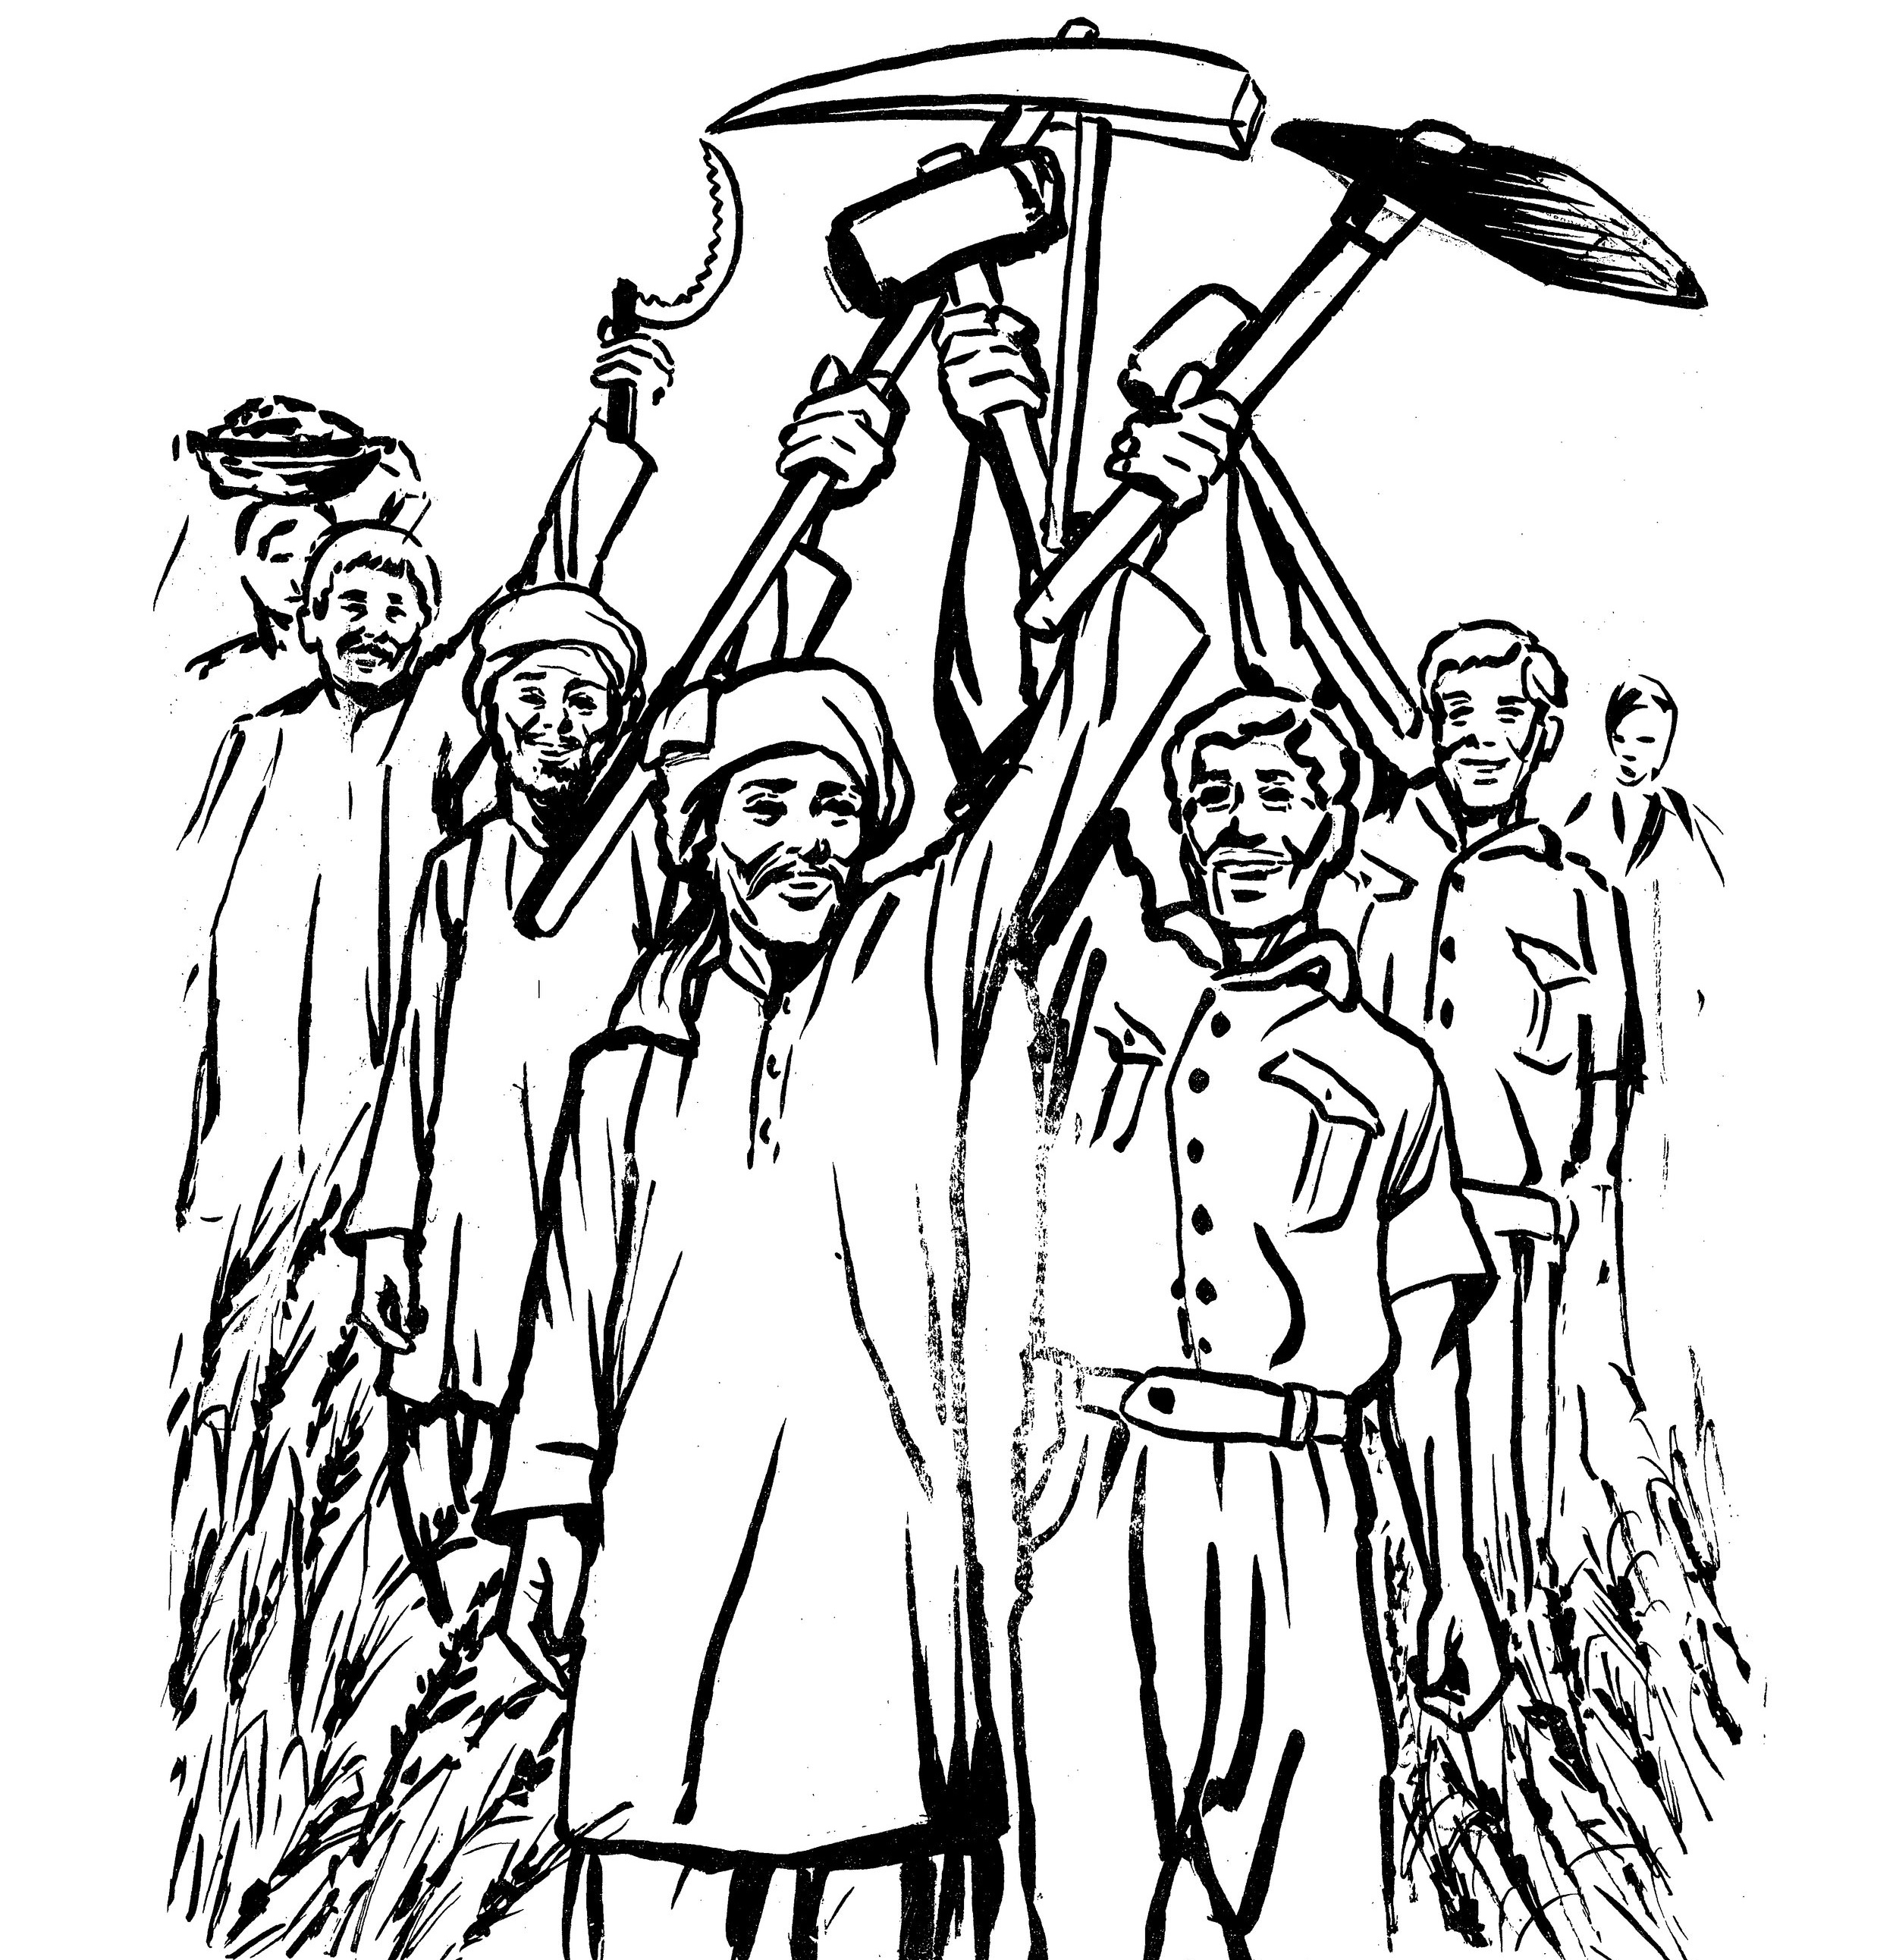 A cover image for the Forum's June-July 1972 issue depicts worker-peasant solidarity. This issue investigated the peasant movement in Hashtnagar and the 1972 Karachi labour unrests. Source: JSTOR